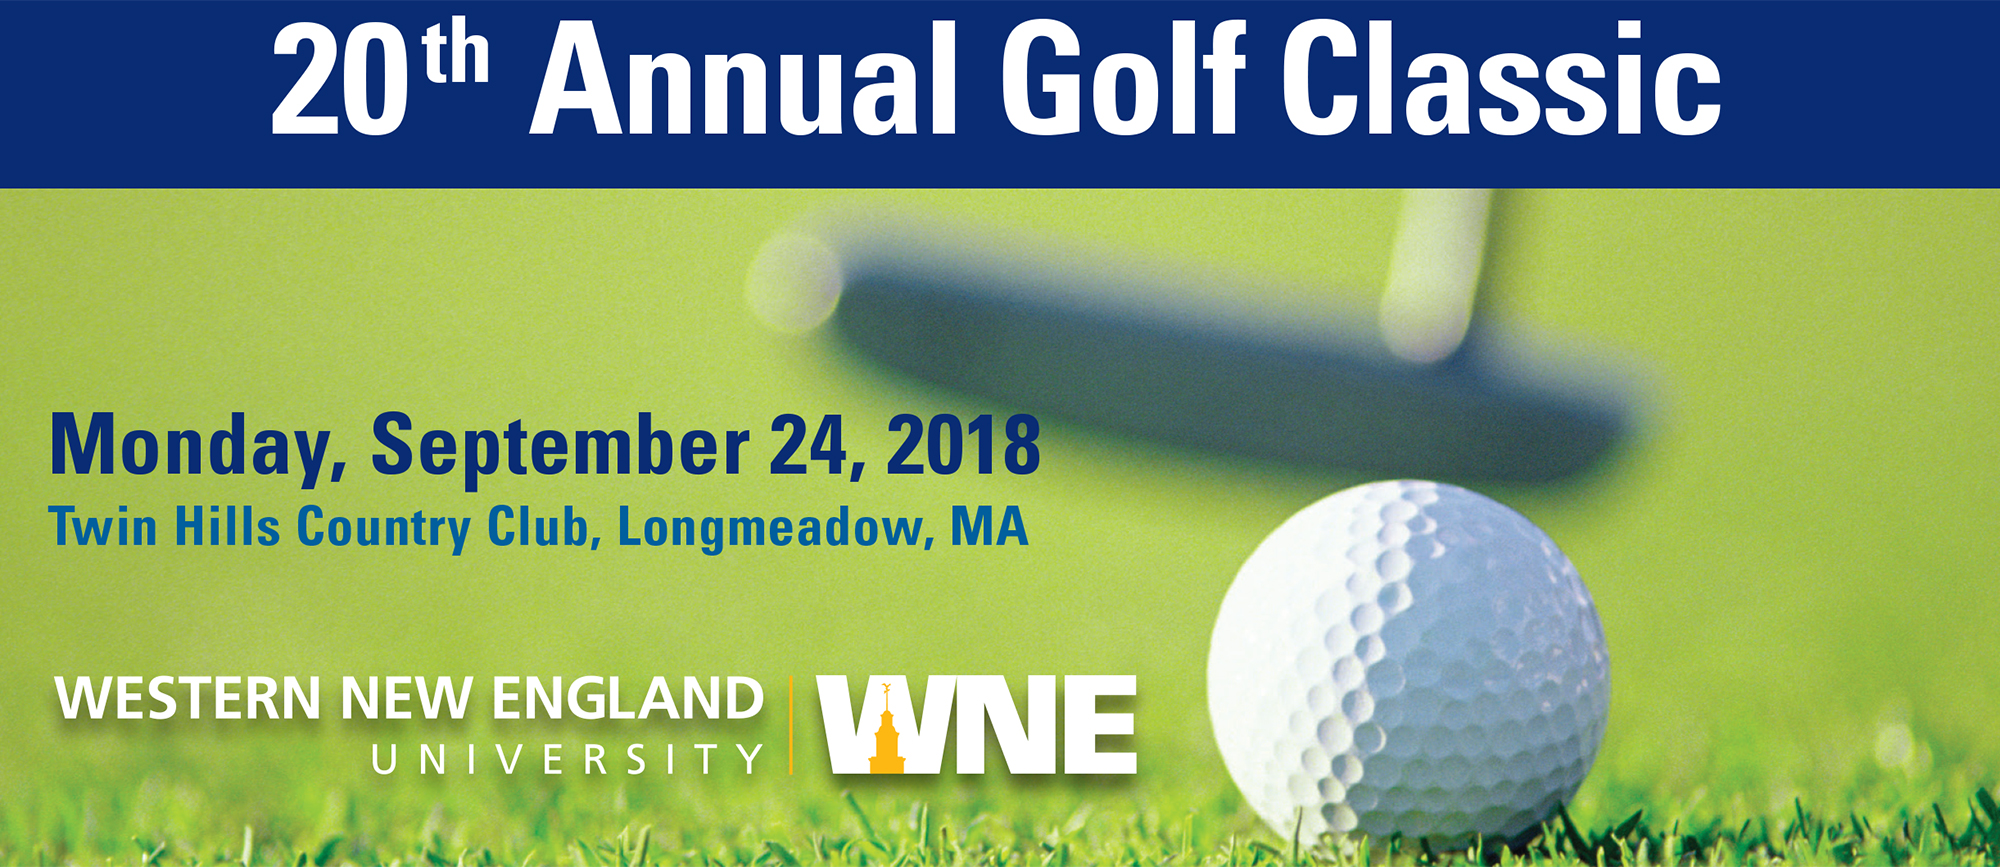 Registration Still Open for 20th Annual Golf Classic!